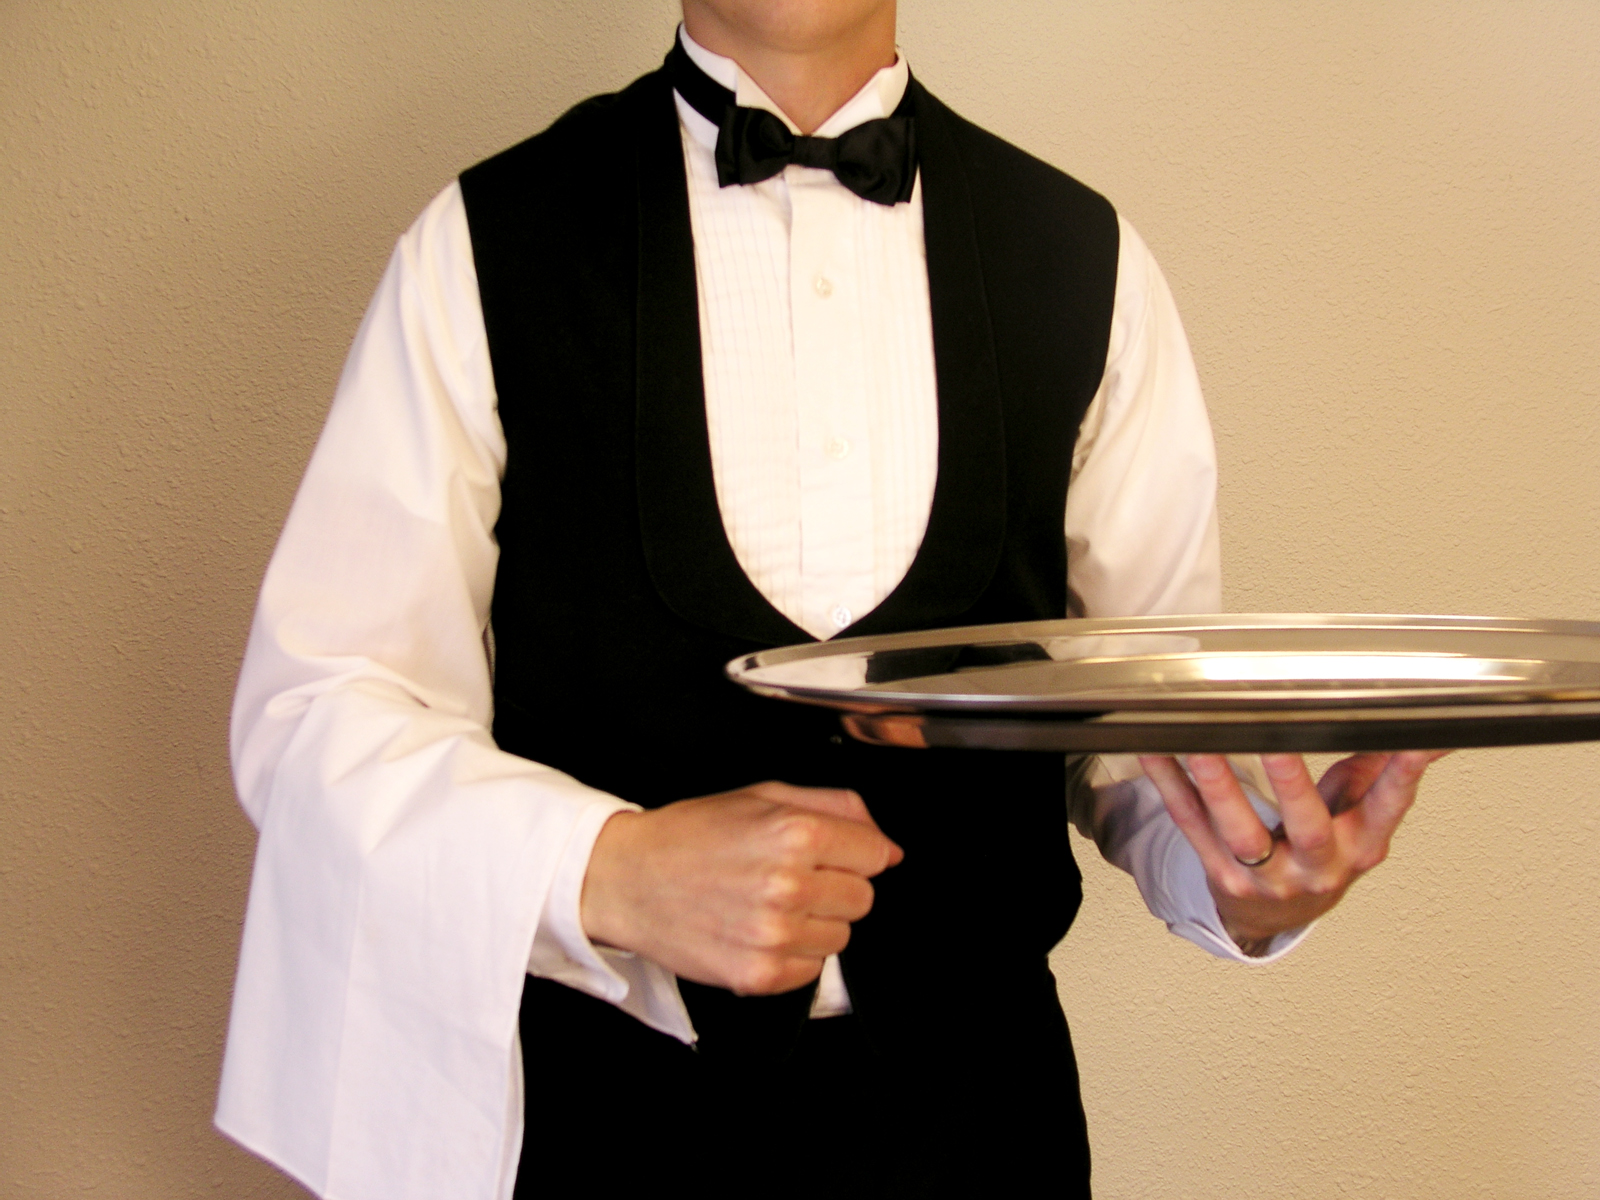 job description for an upscale restaurant waiter